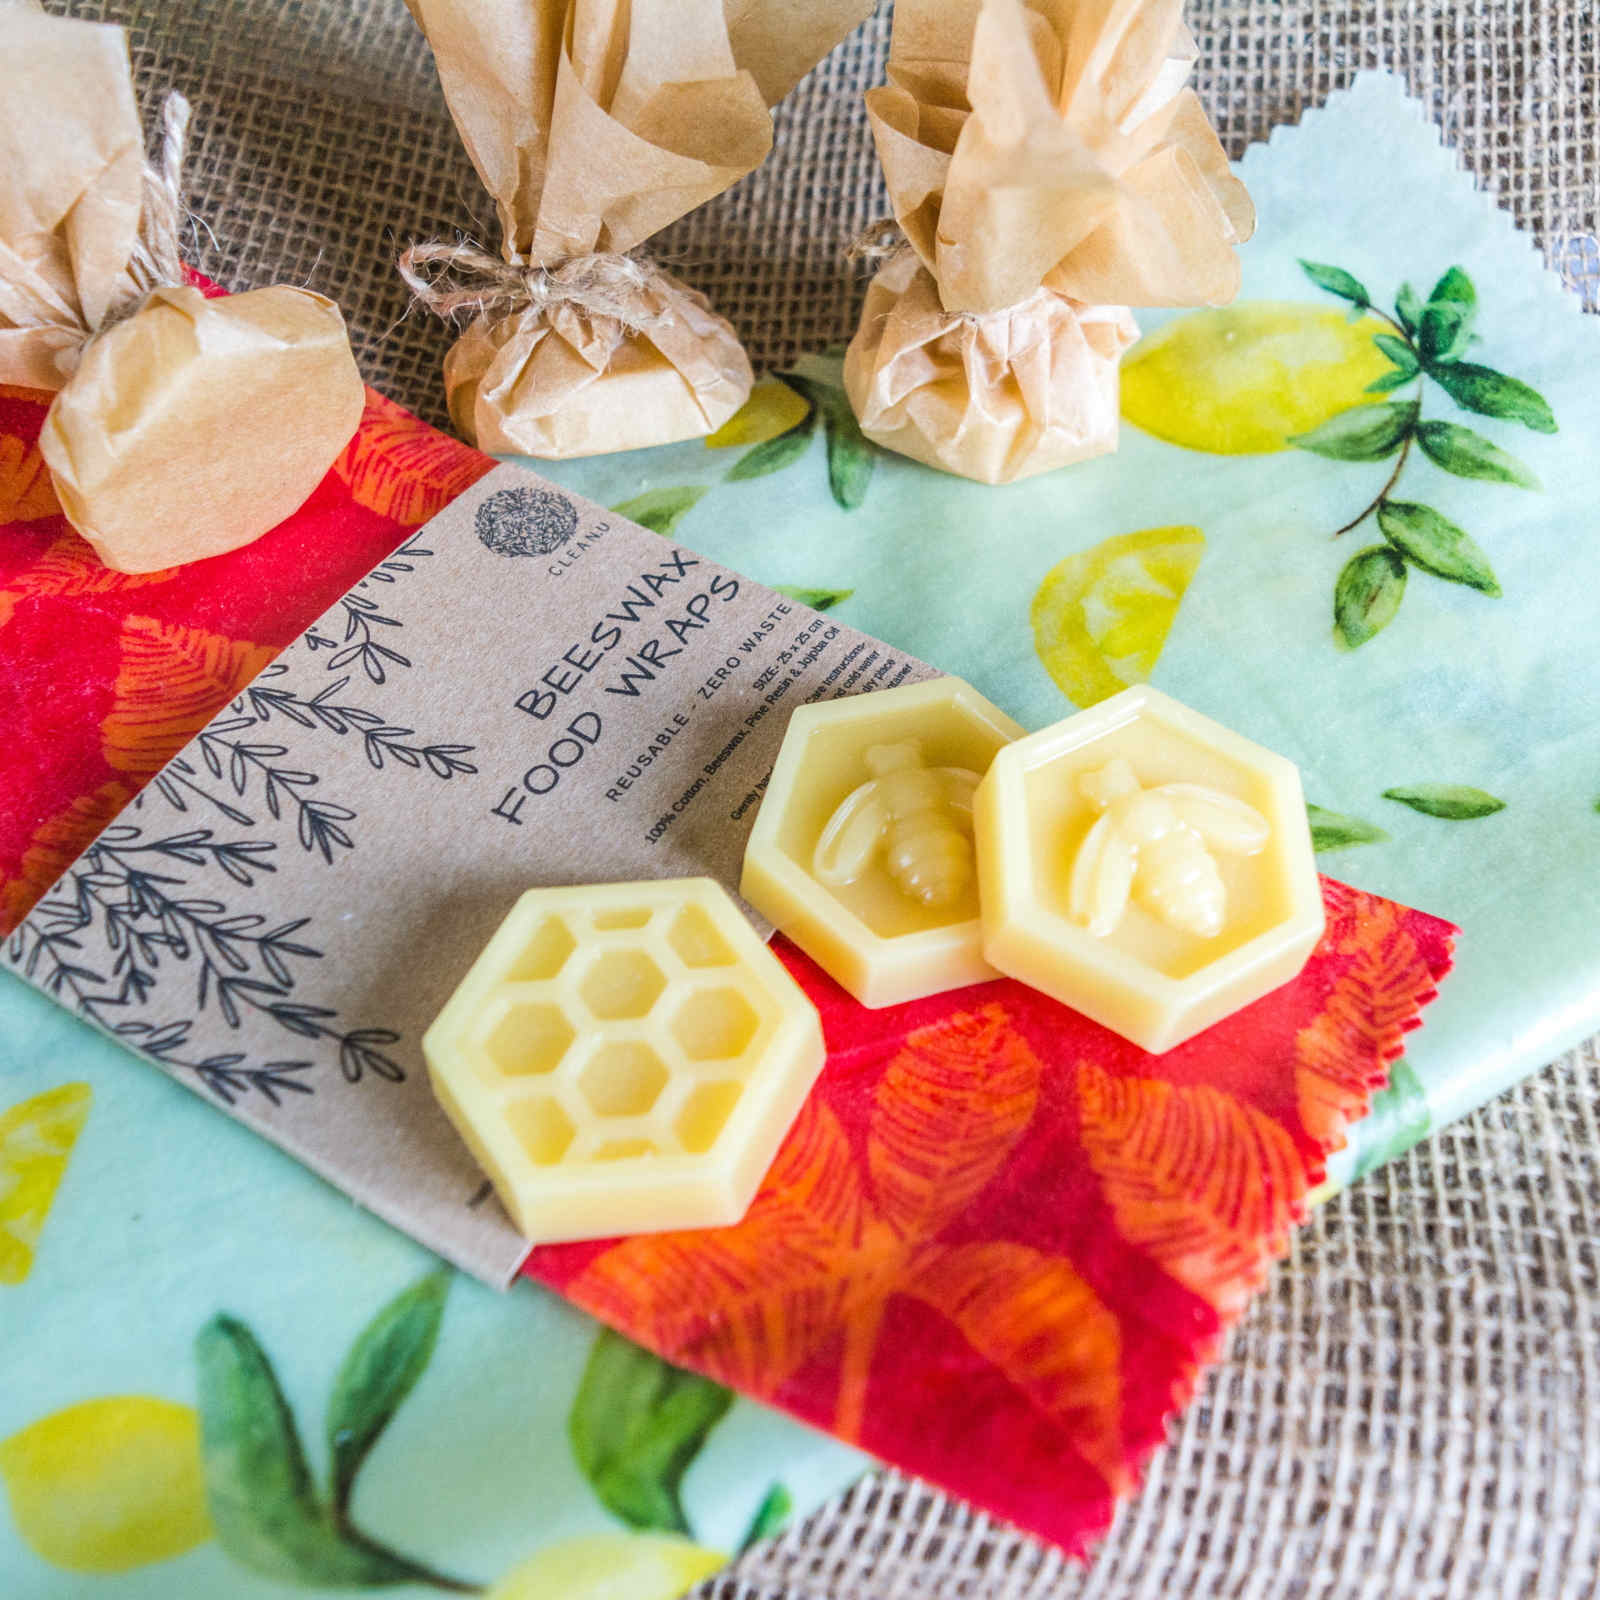 Product image for cleanu beeswax wraps and refresher blocks